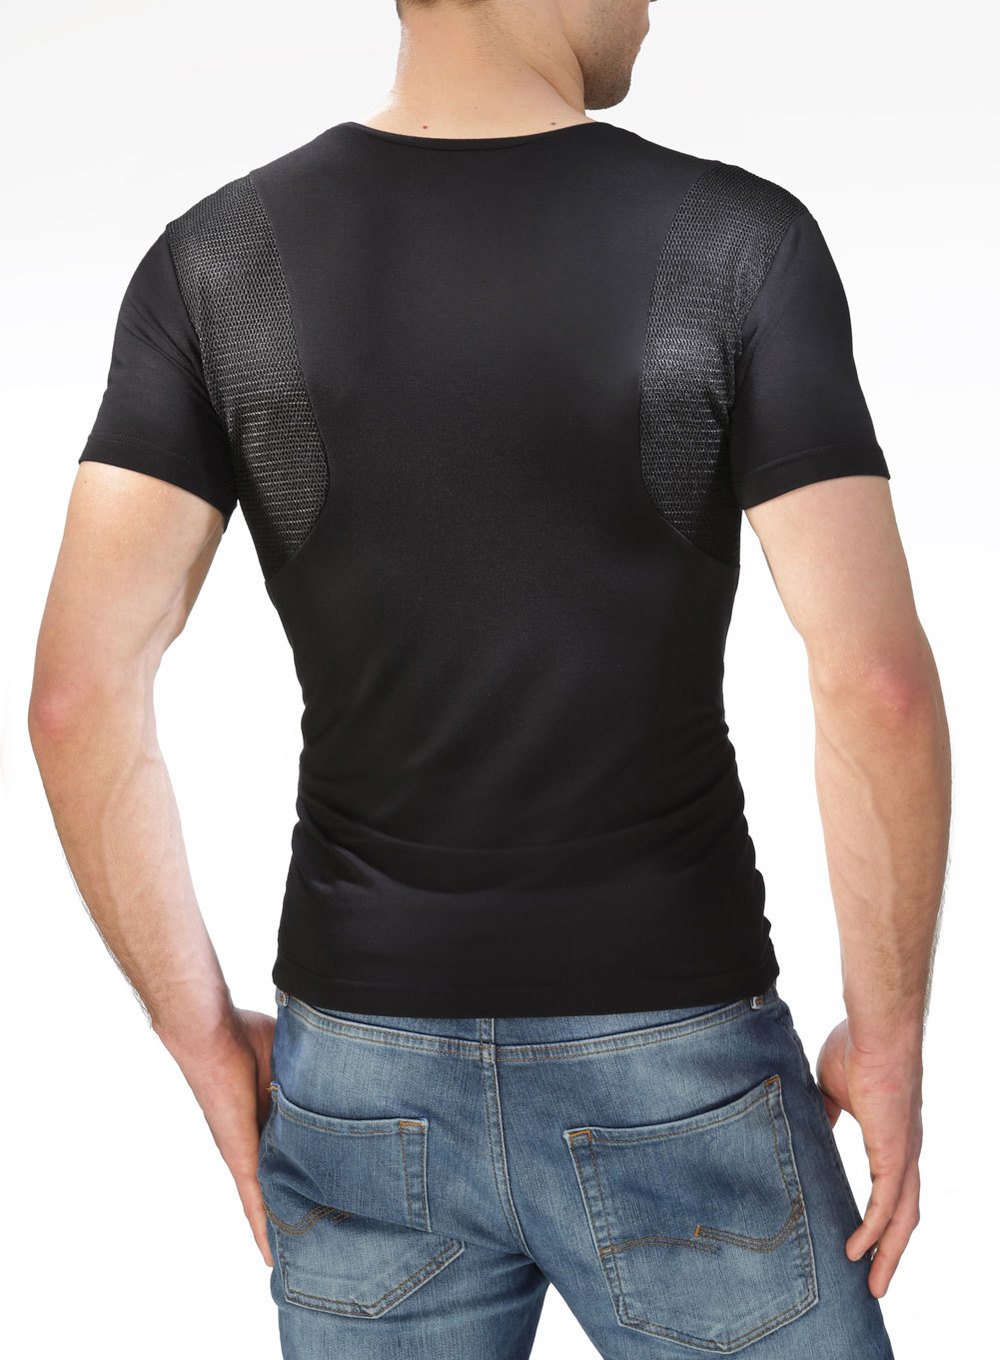 Men-Shirt-Shoulder-RT.jpg